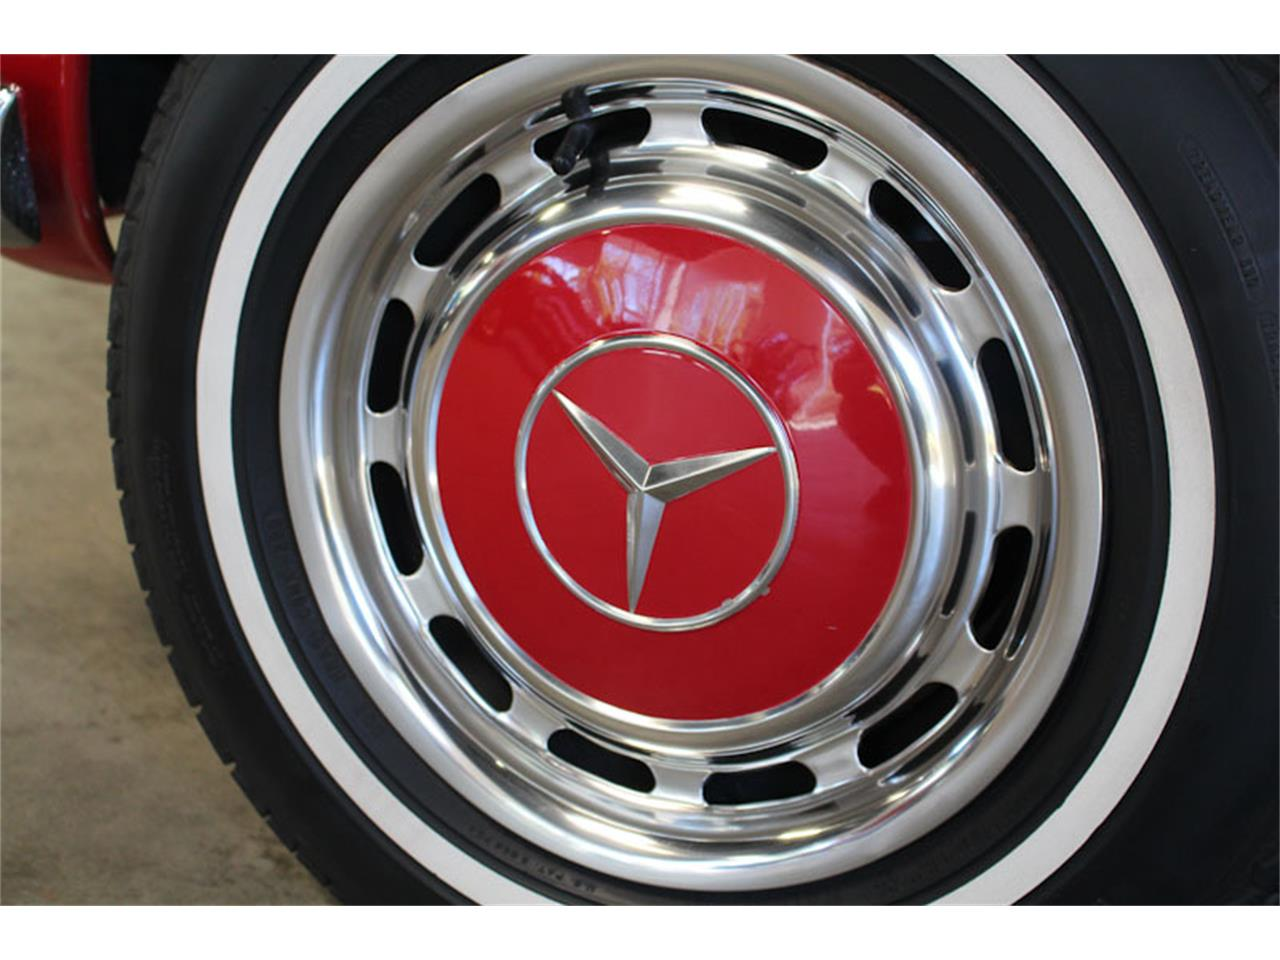 1970 Mercedes-Benz 280SL for sale in Fairfield, CA – photo 30